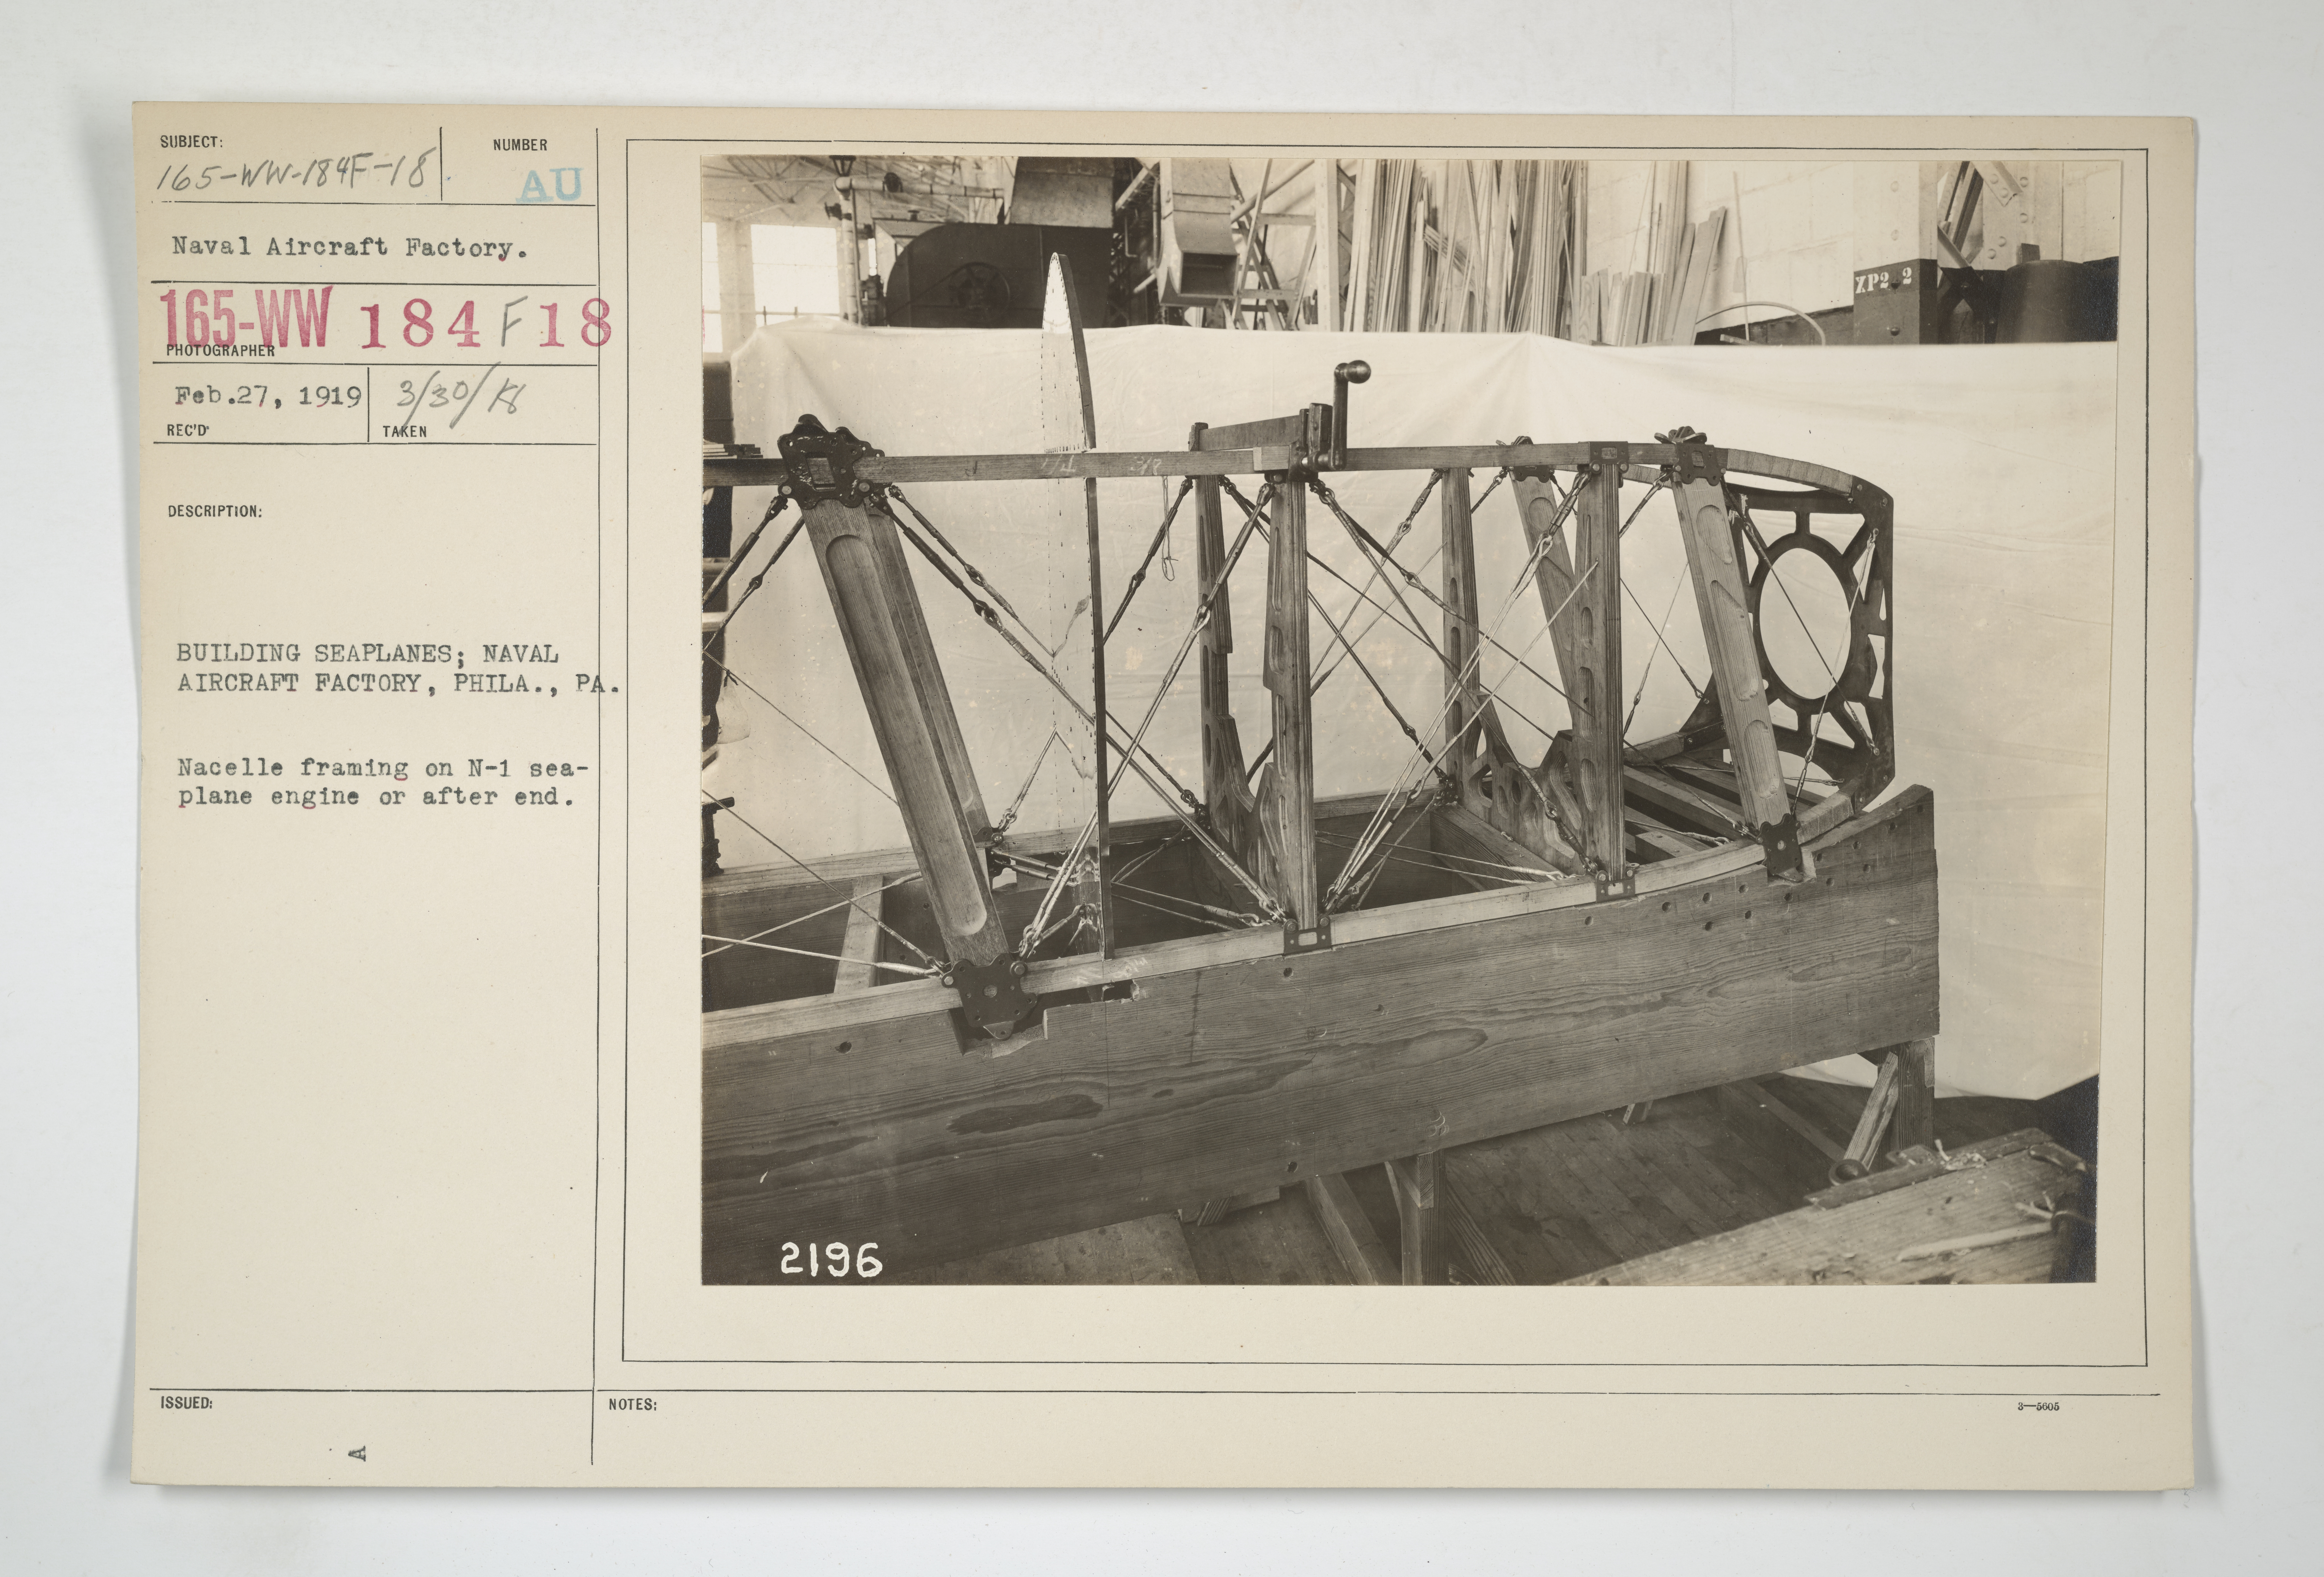 File:Hydroplanes - Manufacturers - Naval Aircraft Factory - N-1 ...